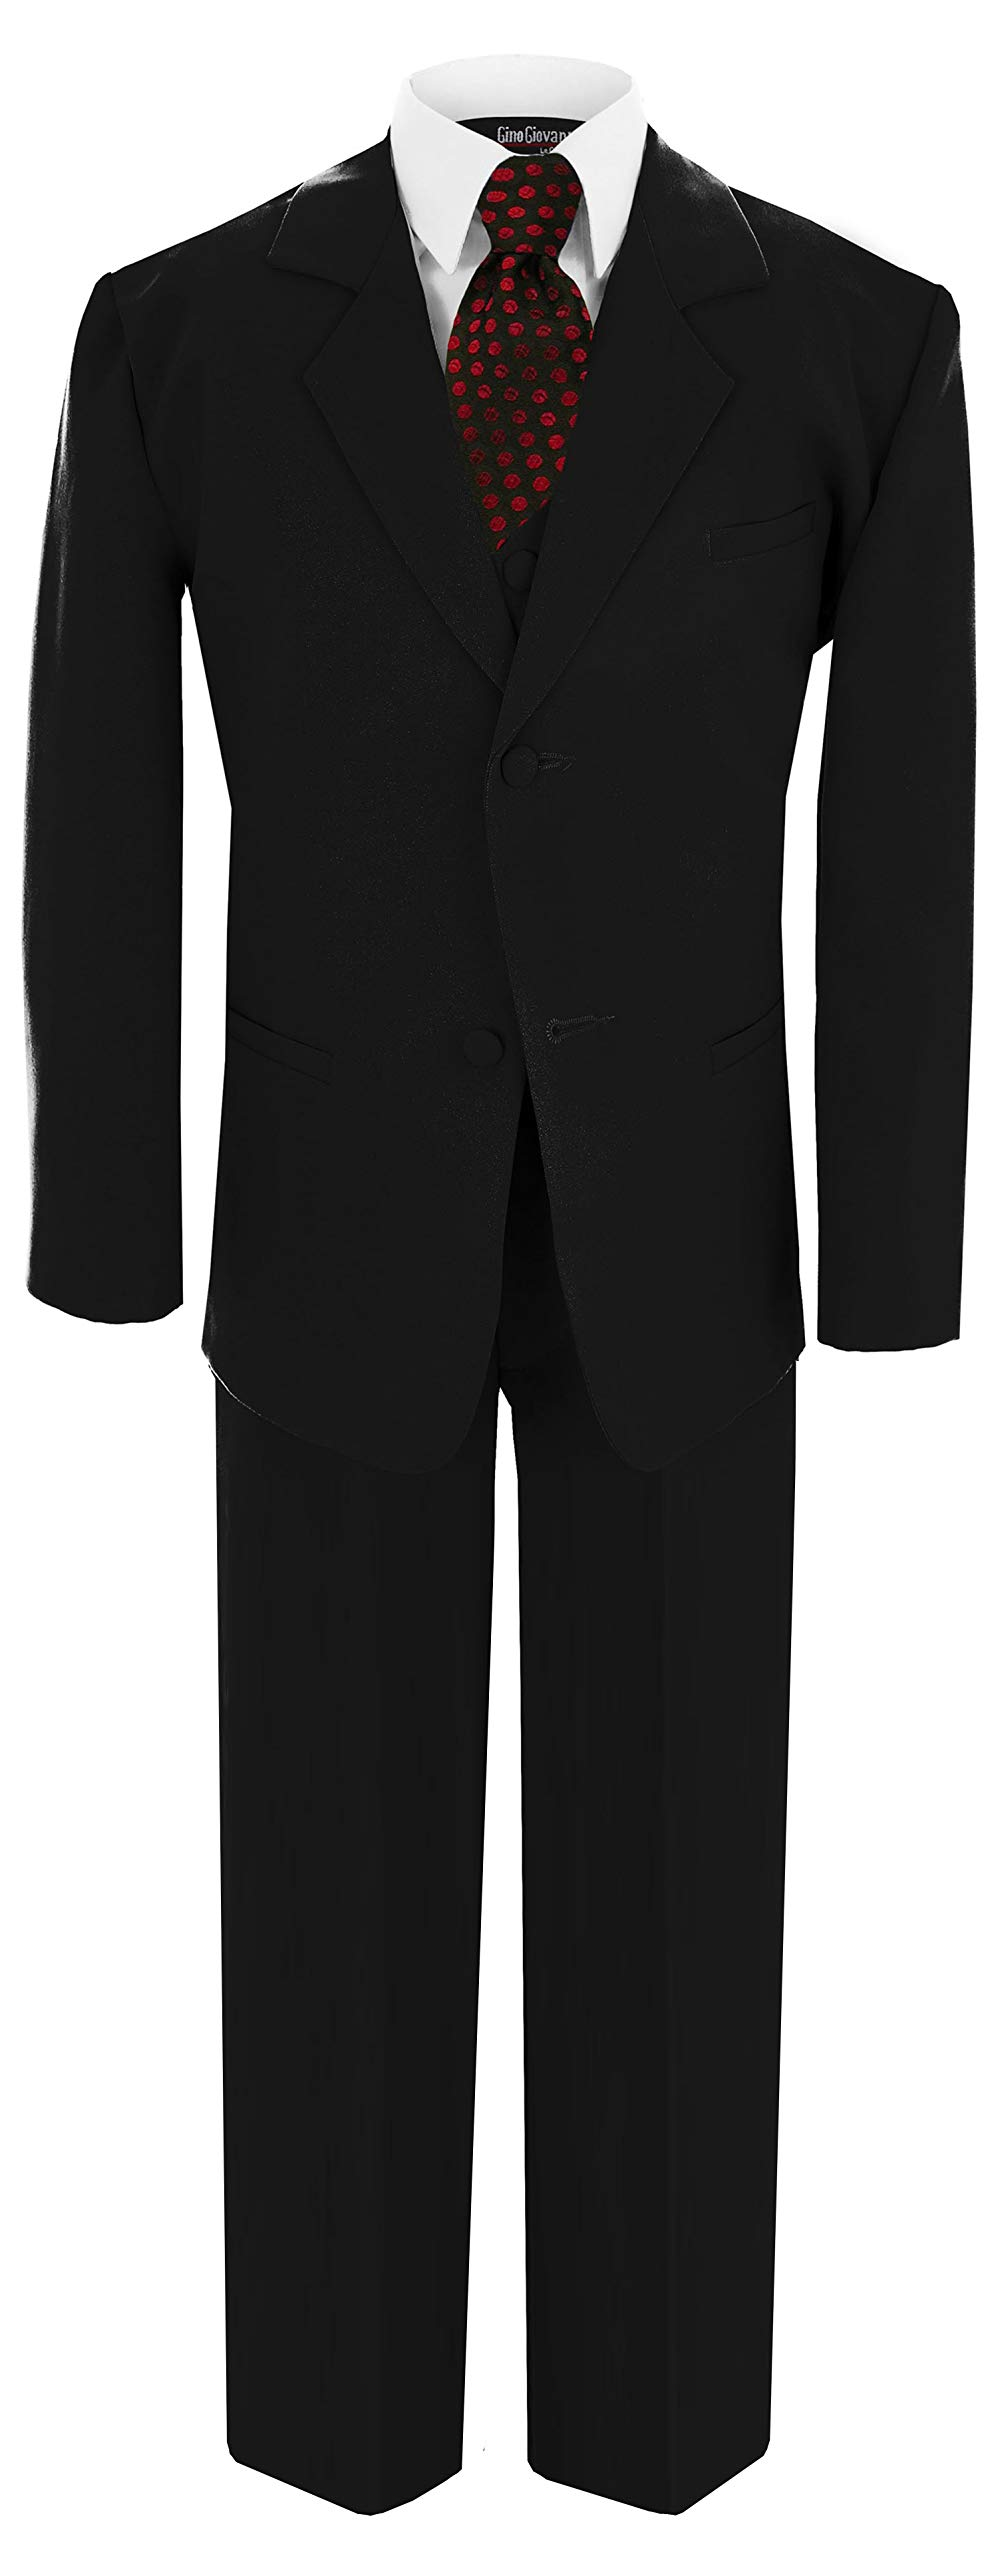 US Fairytailes G188 Black/RED Formal Boys Kids Dress Suit from Baby to Teen (8, Black/Red) by US Fairytailes